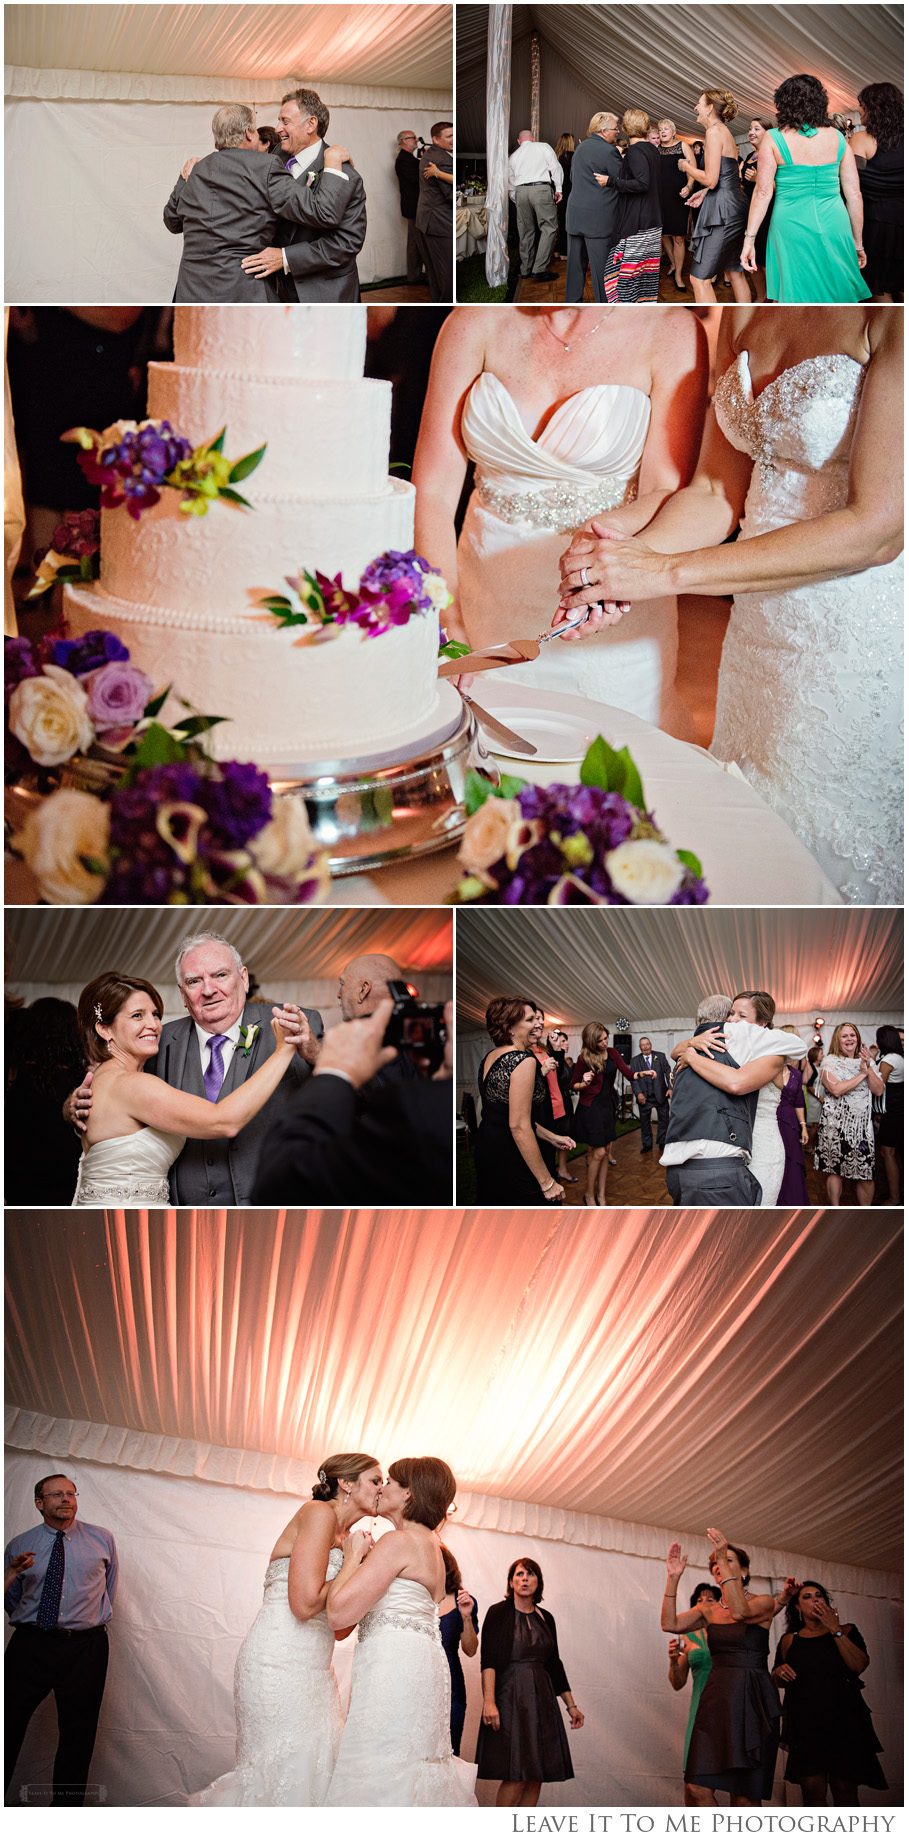 LGBT Wedding-Delaware Wedding Photographer-Equailty Wedding-Same sex Wedding-Reception